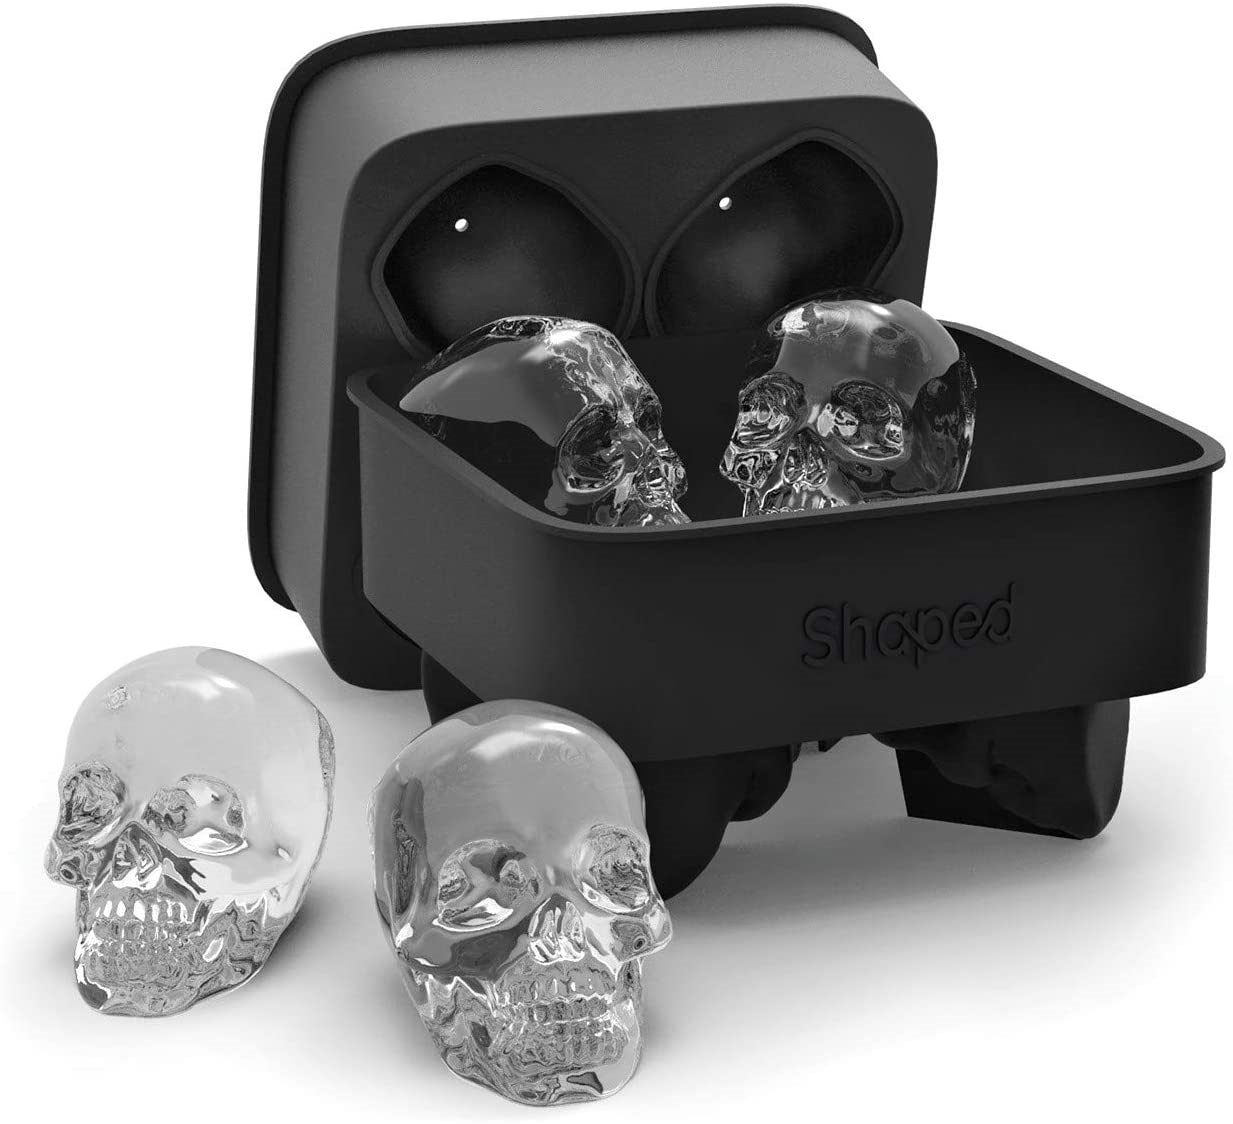 Giant Skull Ice Cubes